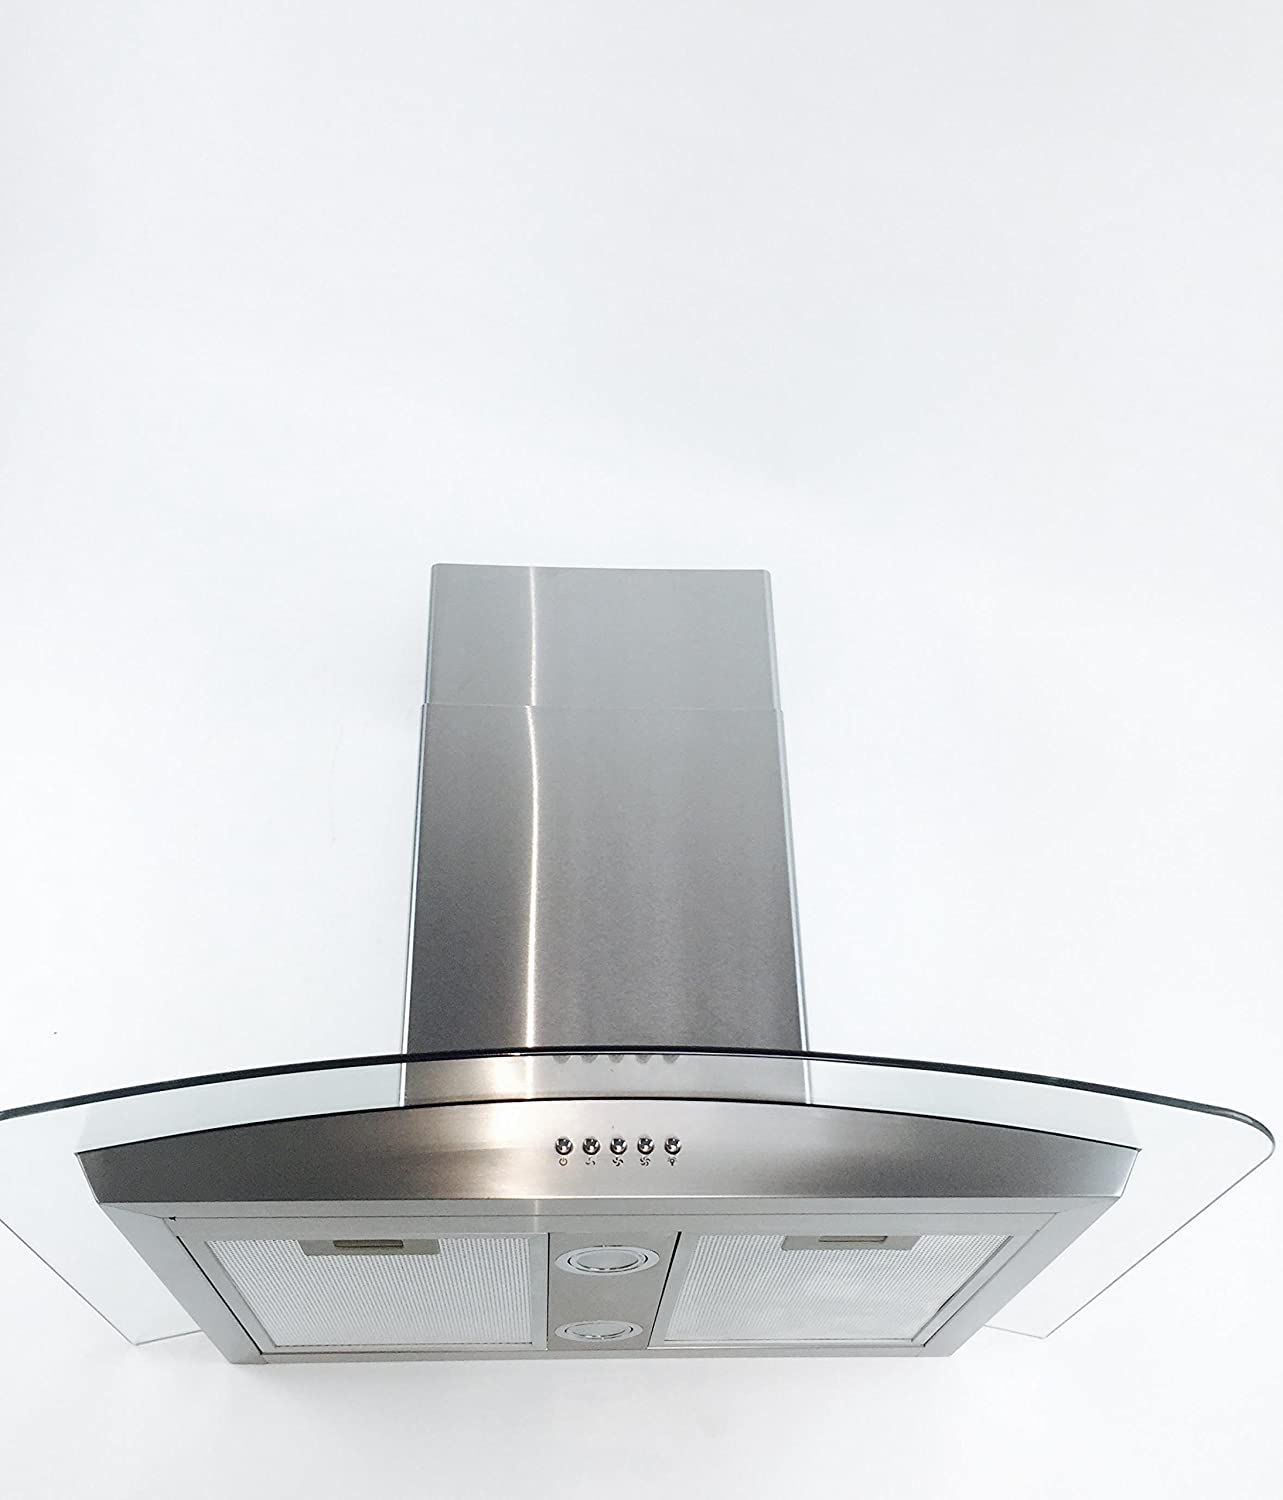 "Eureka 30"" Wall Mounted Glass Stainless Steel Range Hood Vent Hood"